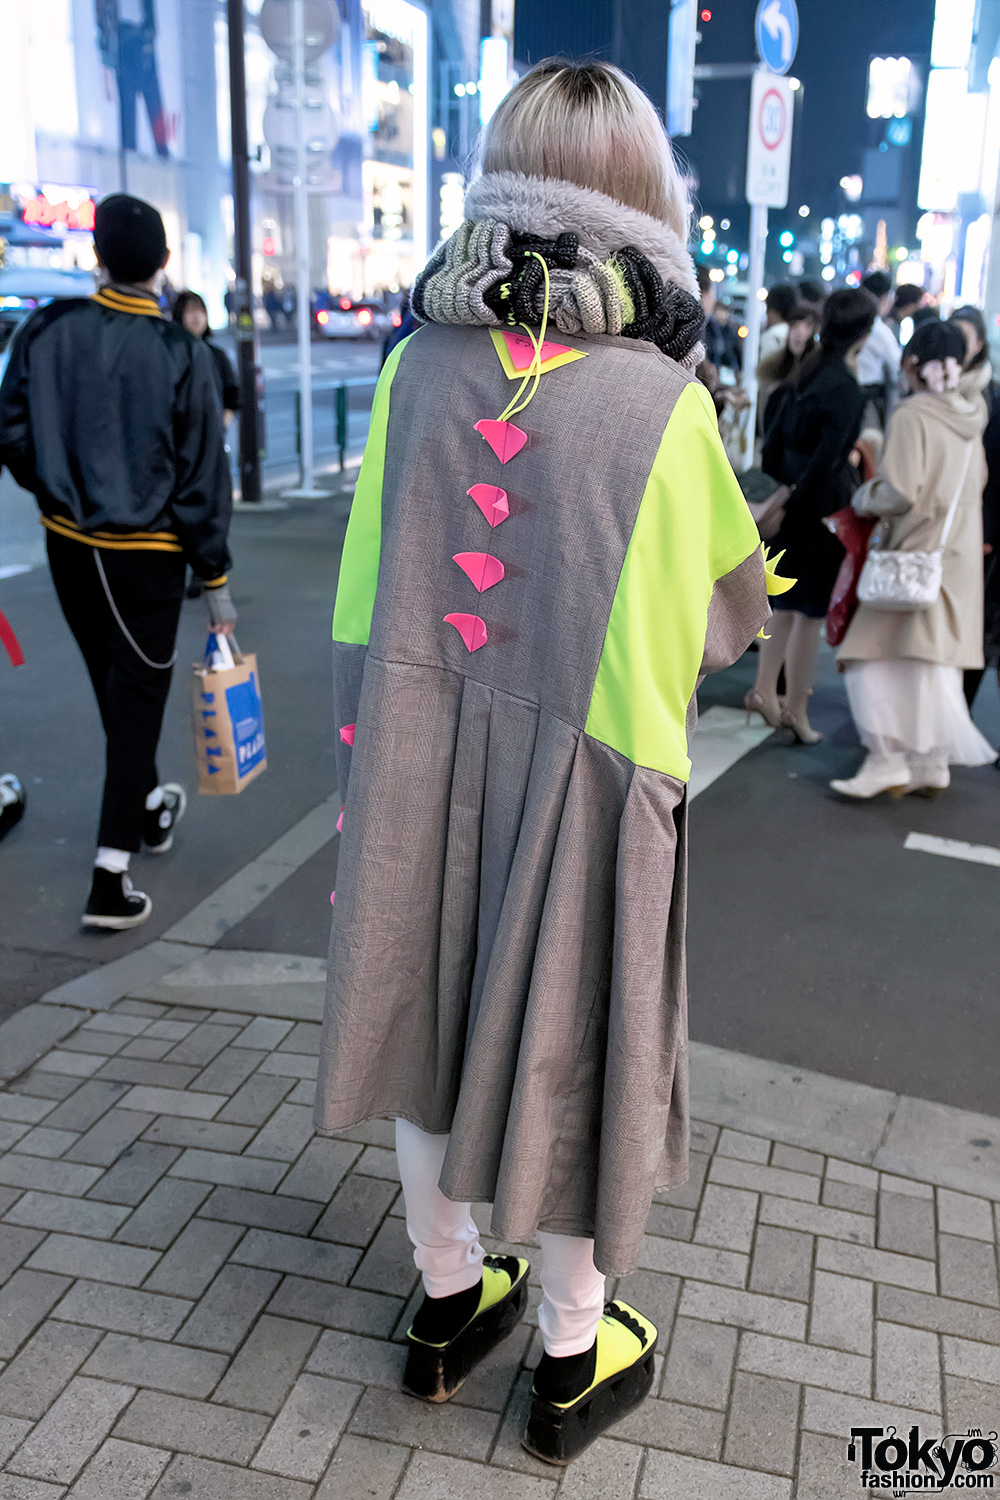 Dog Harajuku Fashion Fangophilia Rings Myob Nyc Bag: Zetsukigu Coat, Neon Platform Sandals & Mercibeaucoup Bag